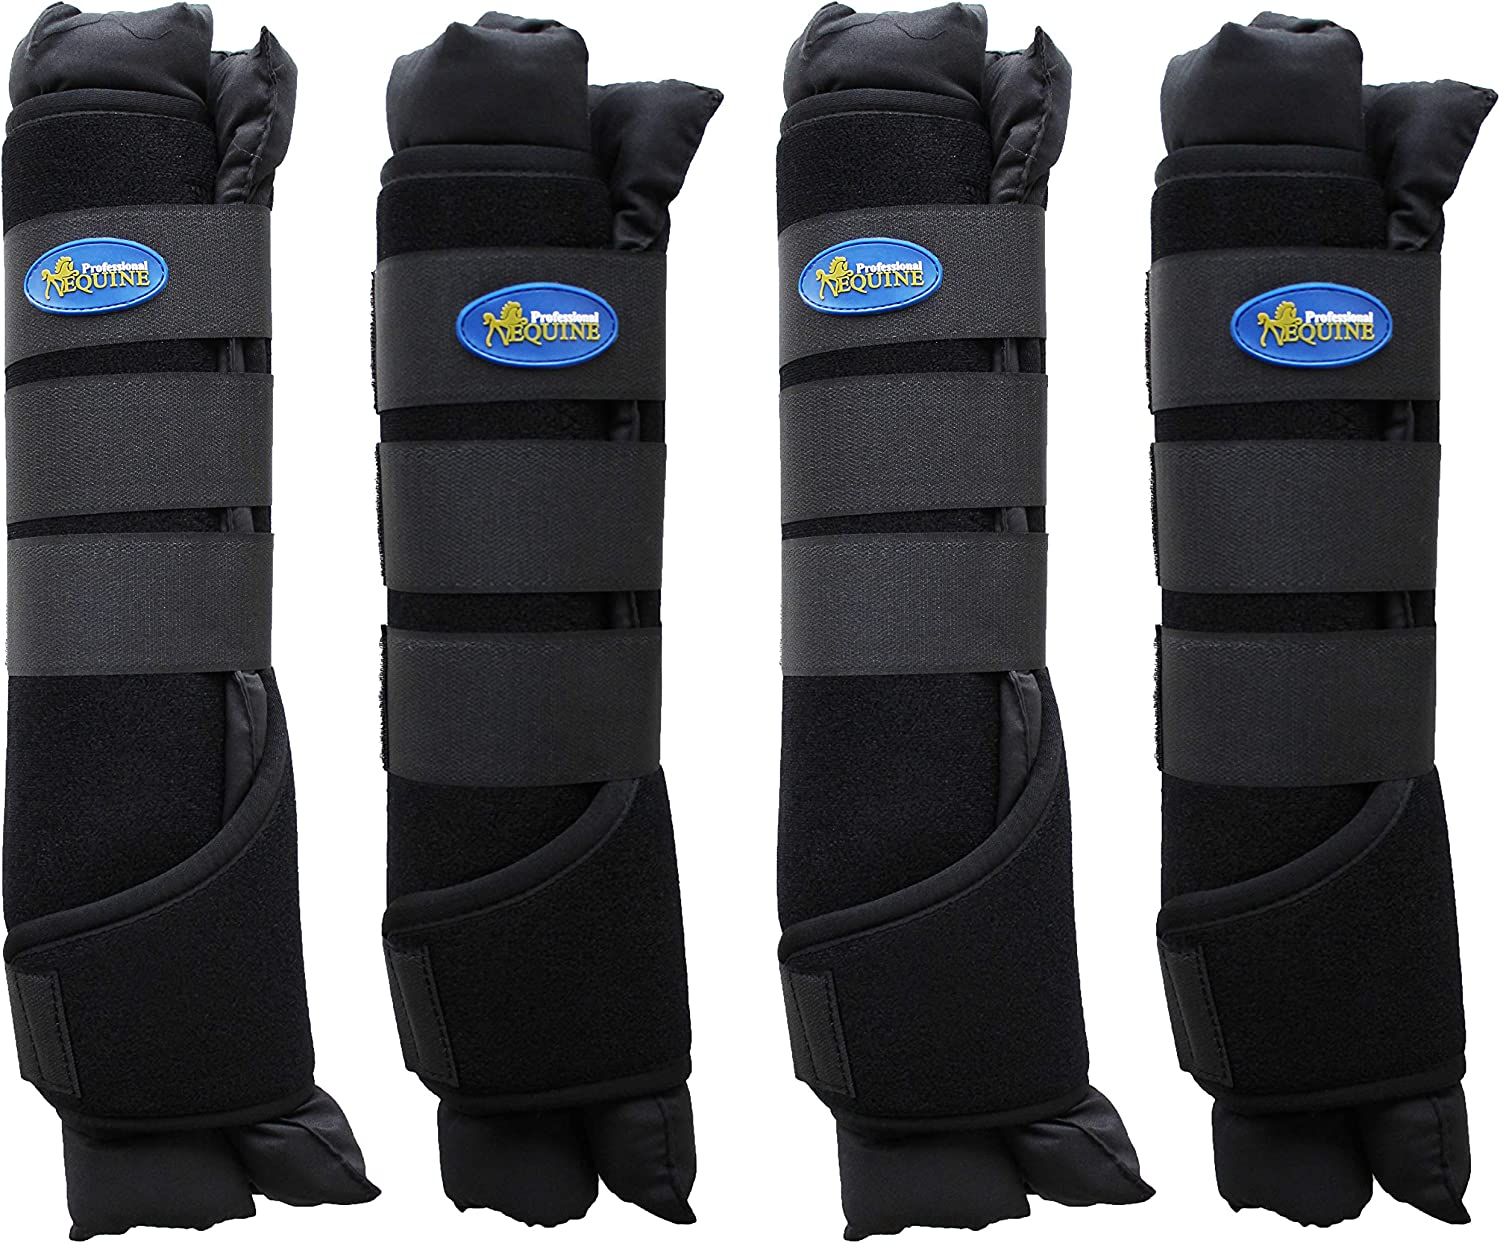 Professional Equine Horse 4Pack Stable Shipping Boot Wraps Leg Care Black 4120BK